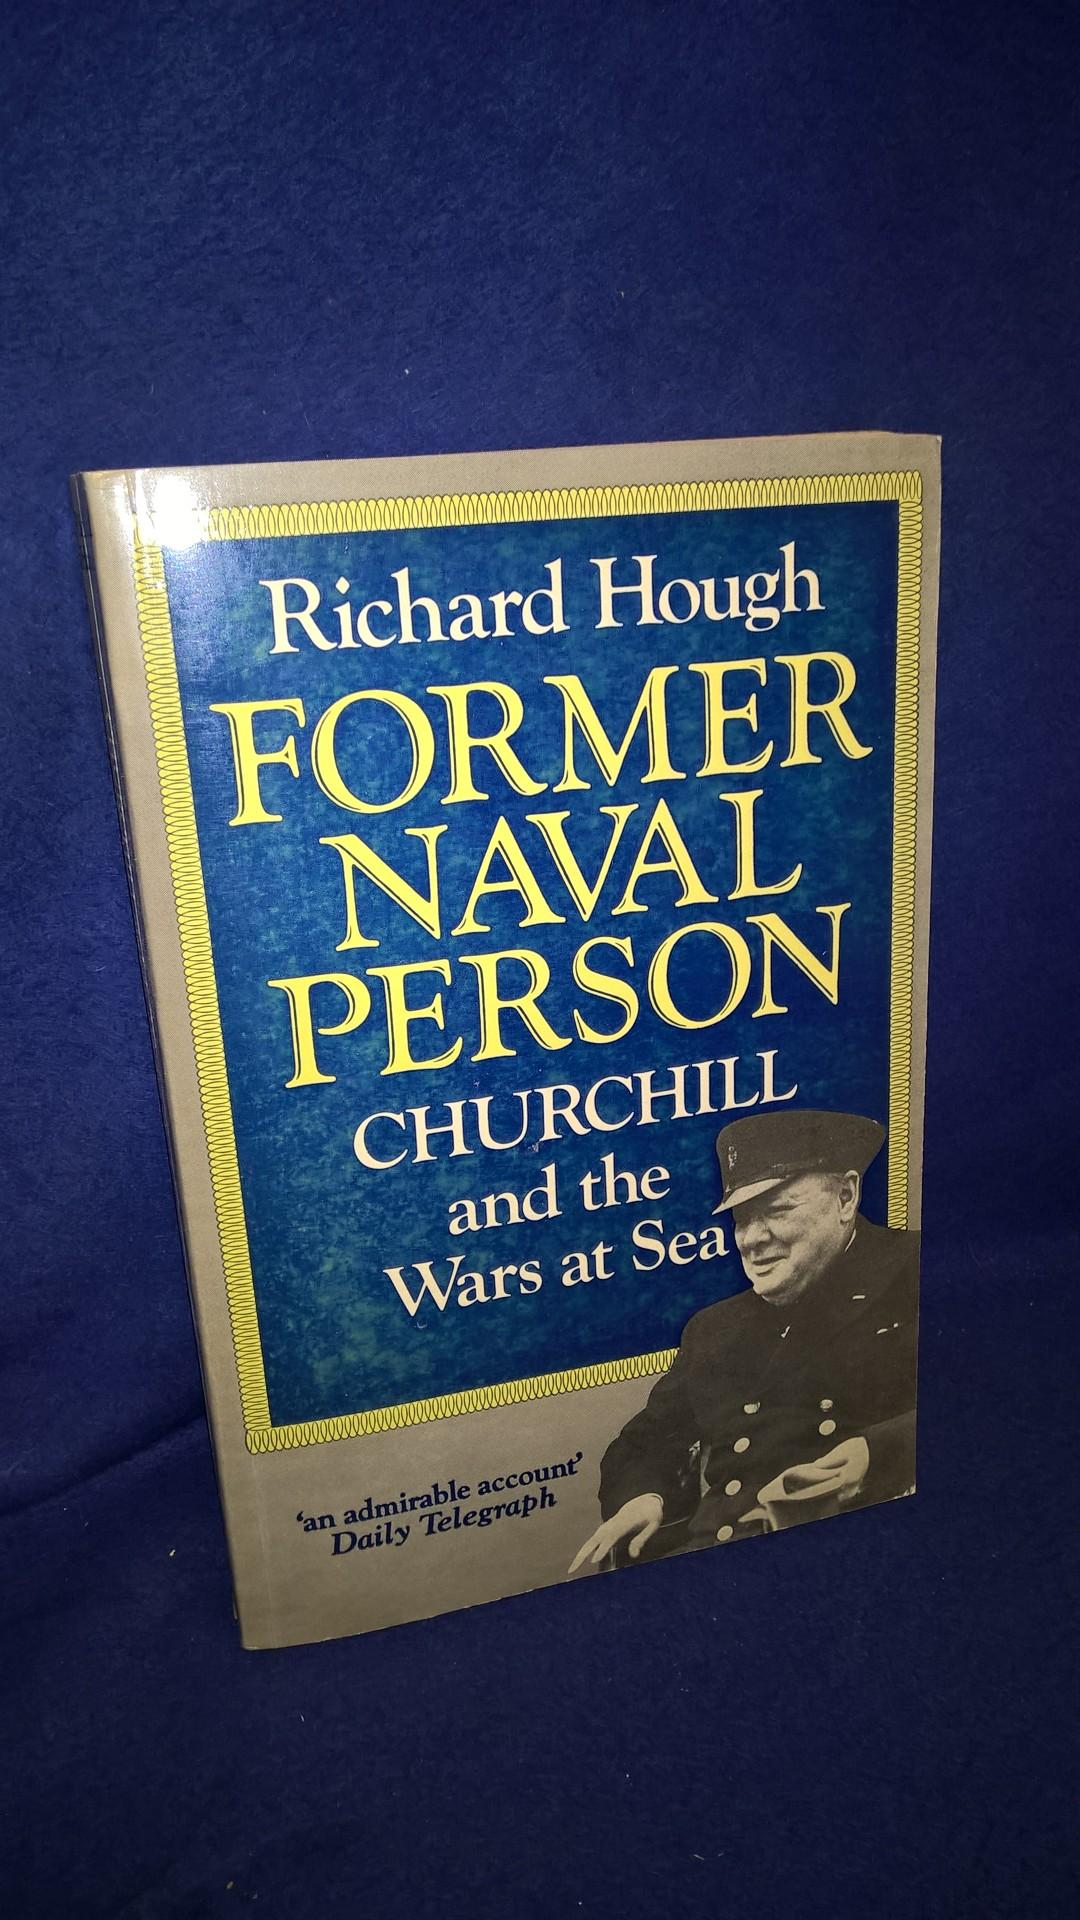 Former Naval Person Churchill and the Wars at Sea